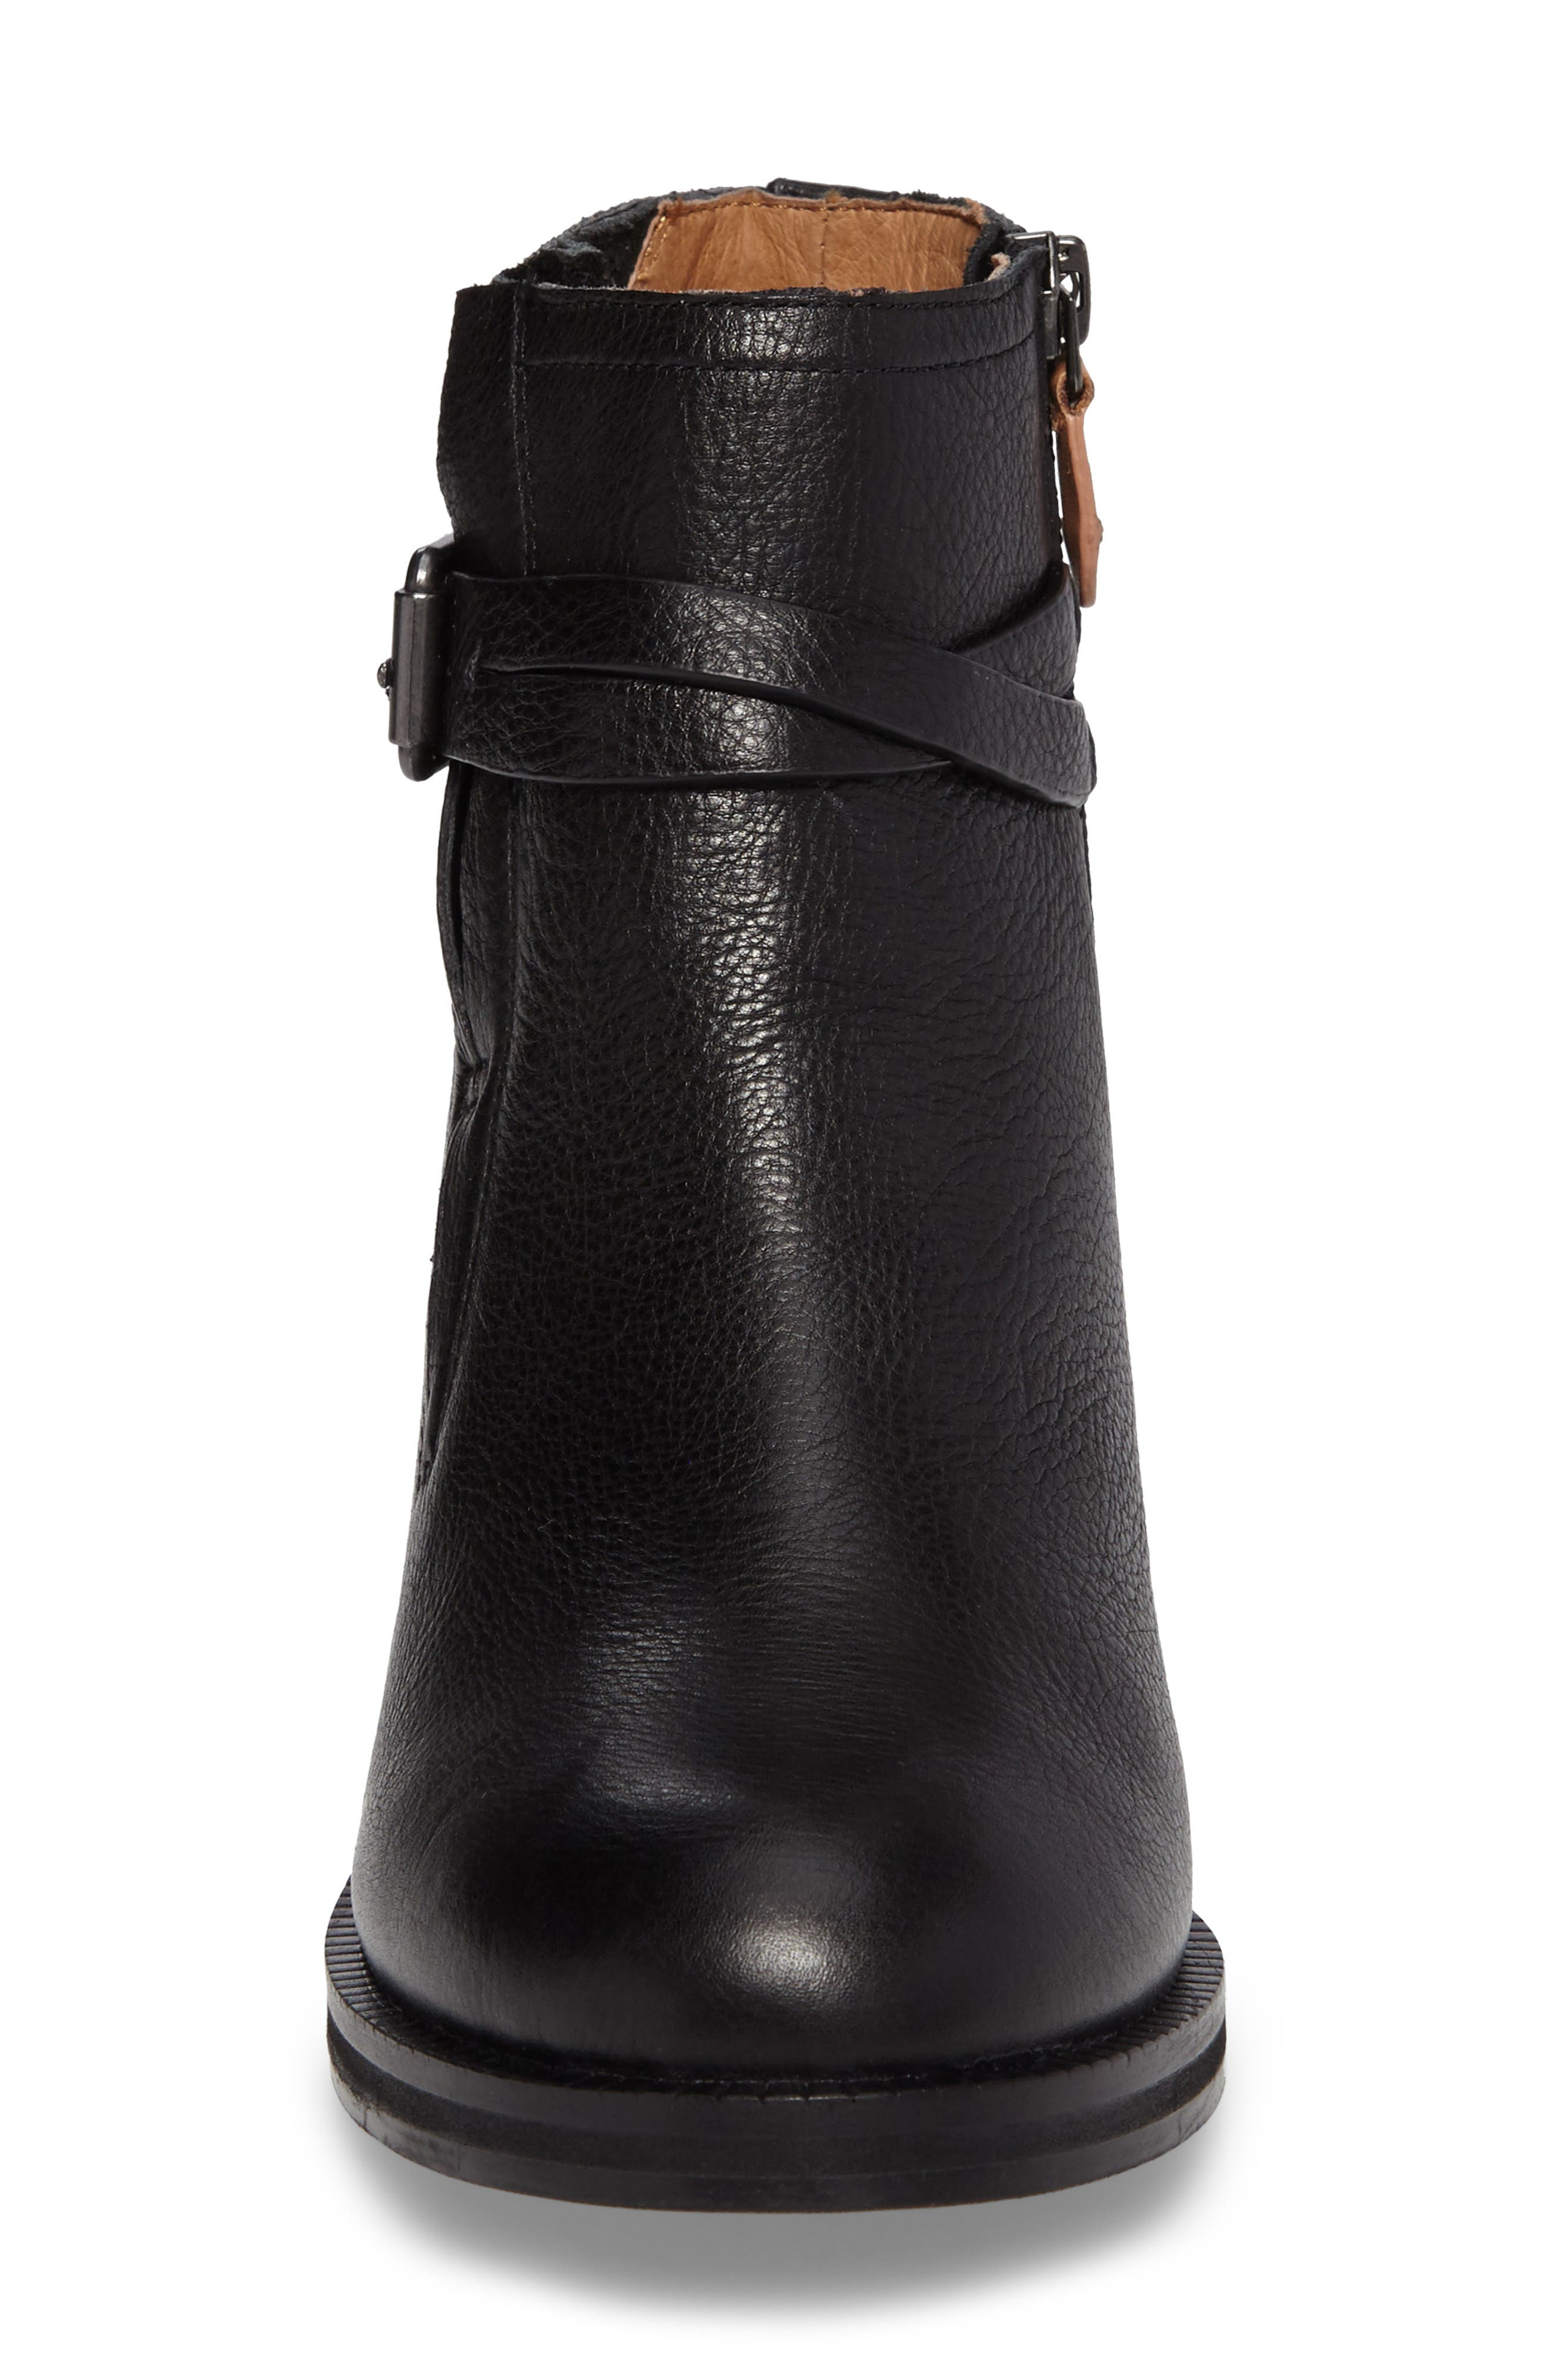 GENTLE SOULS BY KENNETH COLE, Percy Bootie, Alternate thumbnail 4, color, BLACK LEATHER